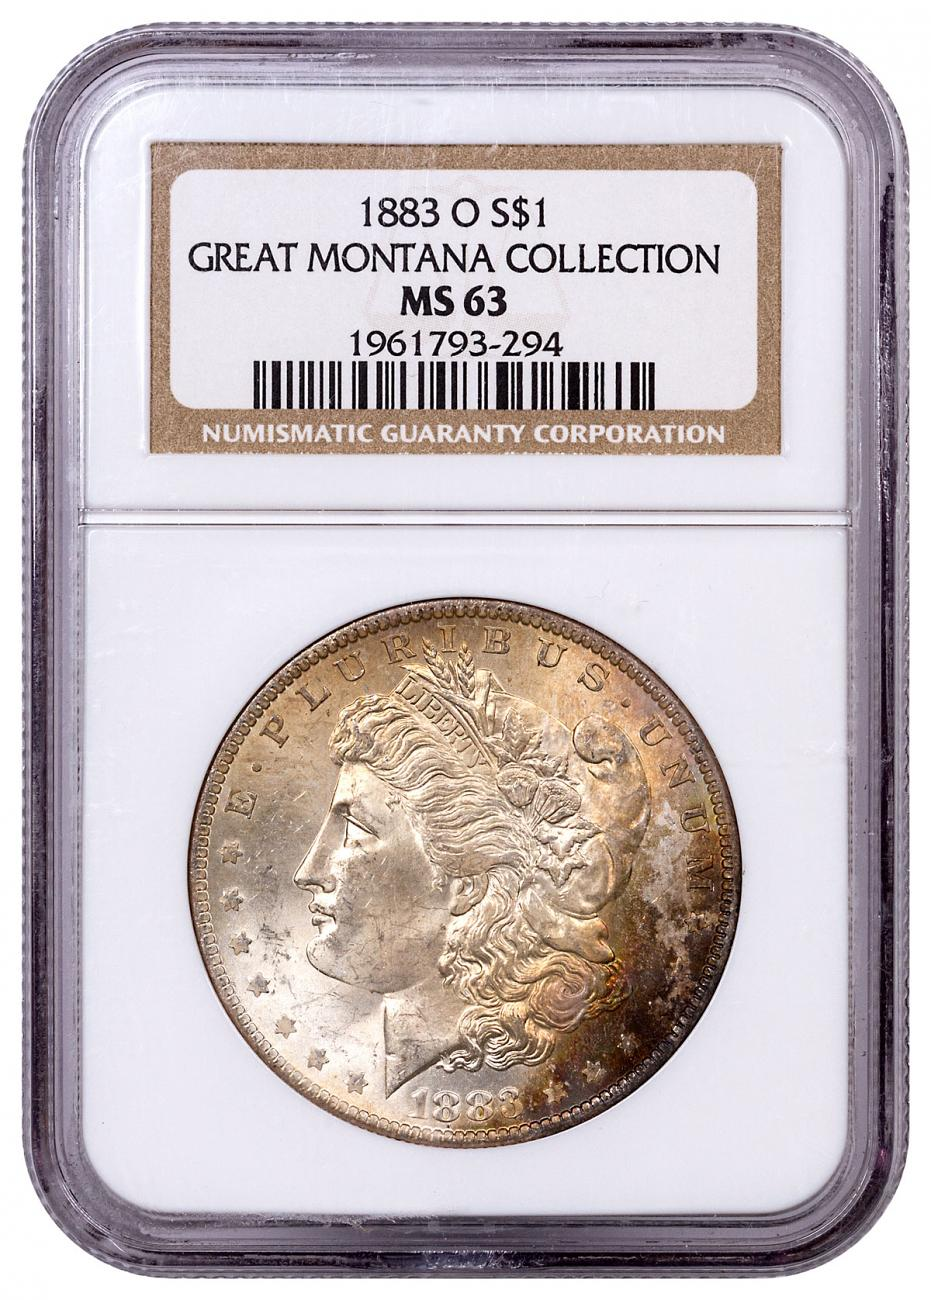 1883-O Morgan Silver Dollar From the Great Montana Collection NGC MS63 Toned CPCR 3294